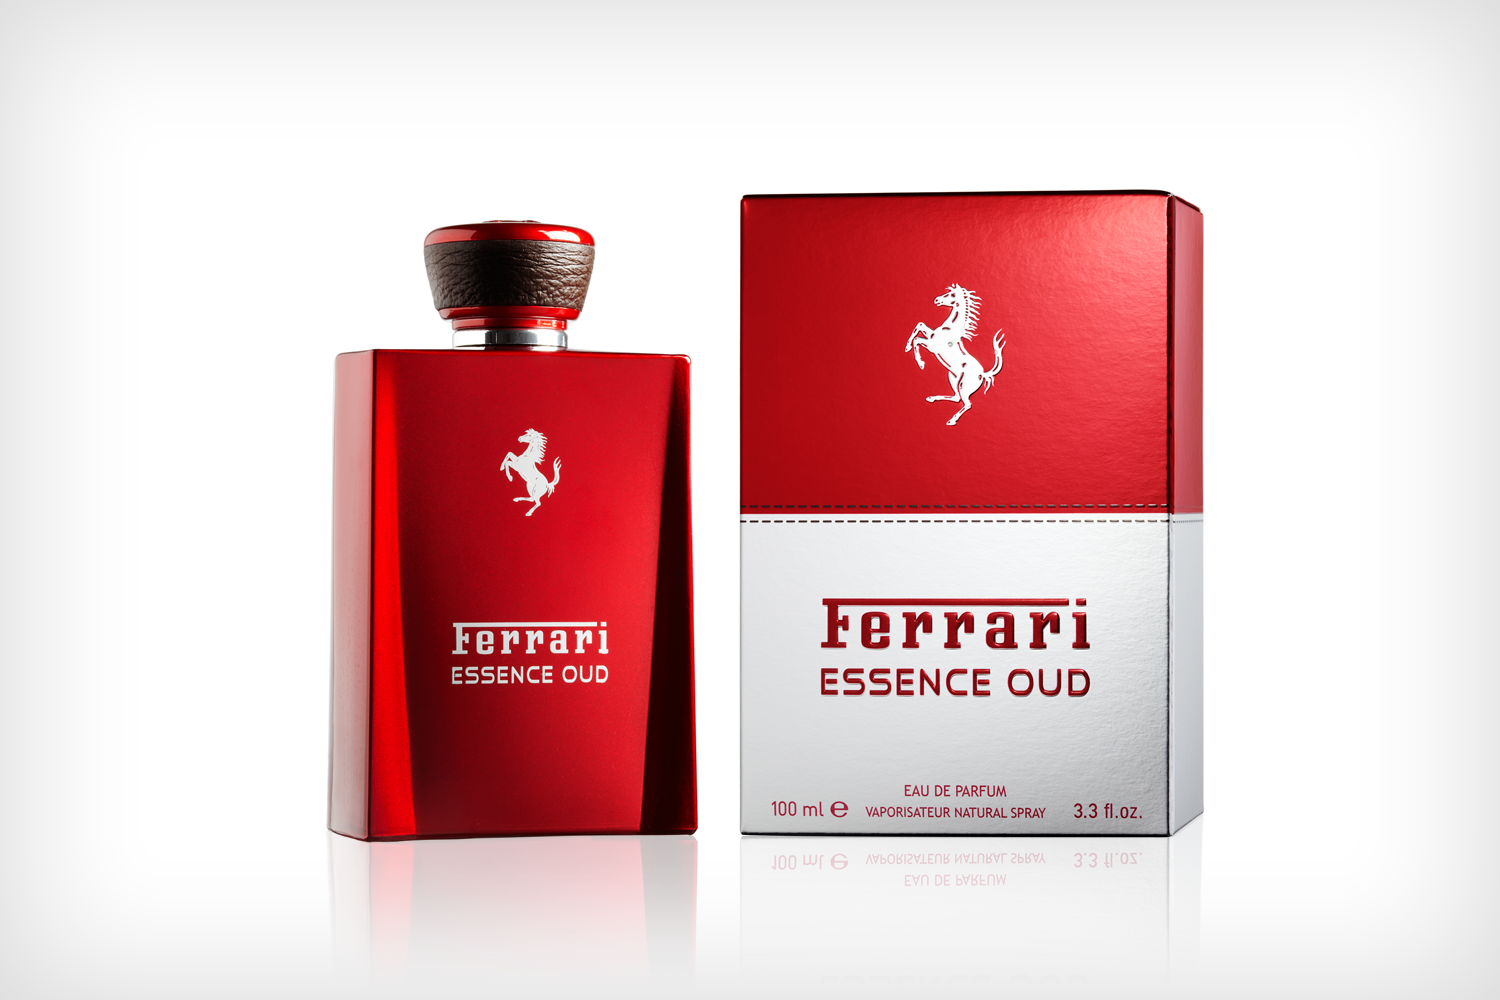 Ferrari Essence Oud for Men Eau De Parfum 3.4oz (100ml)